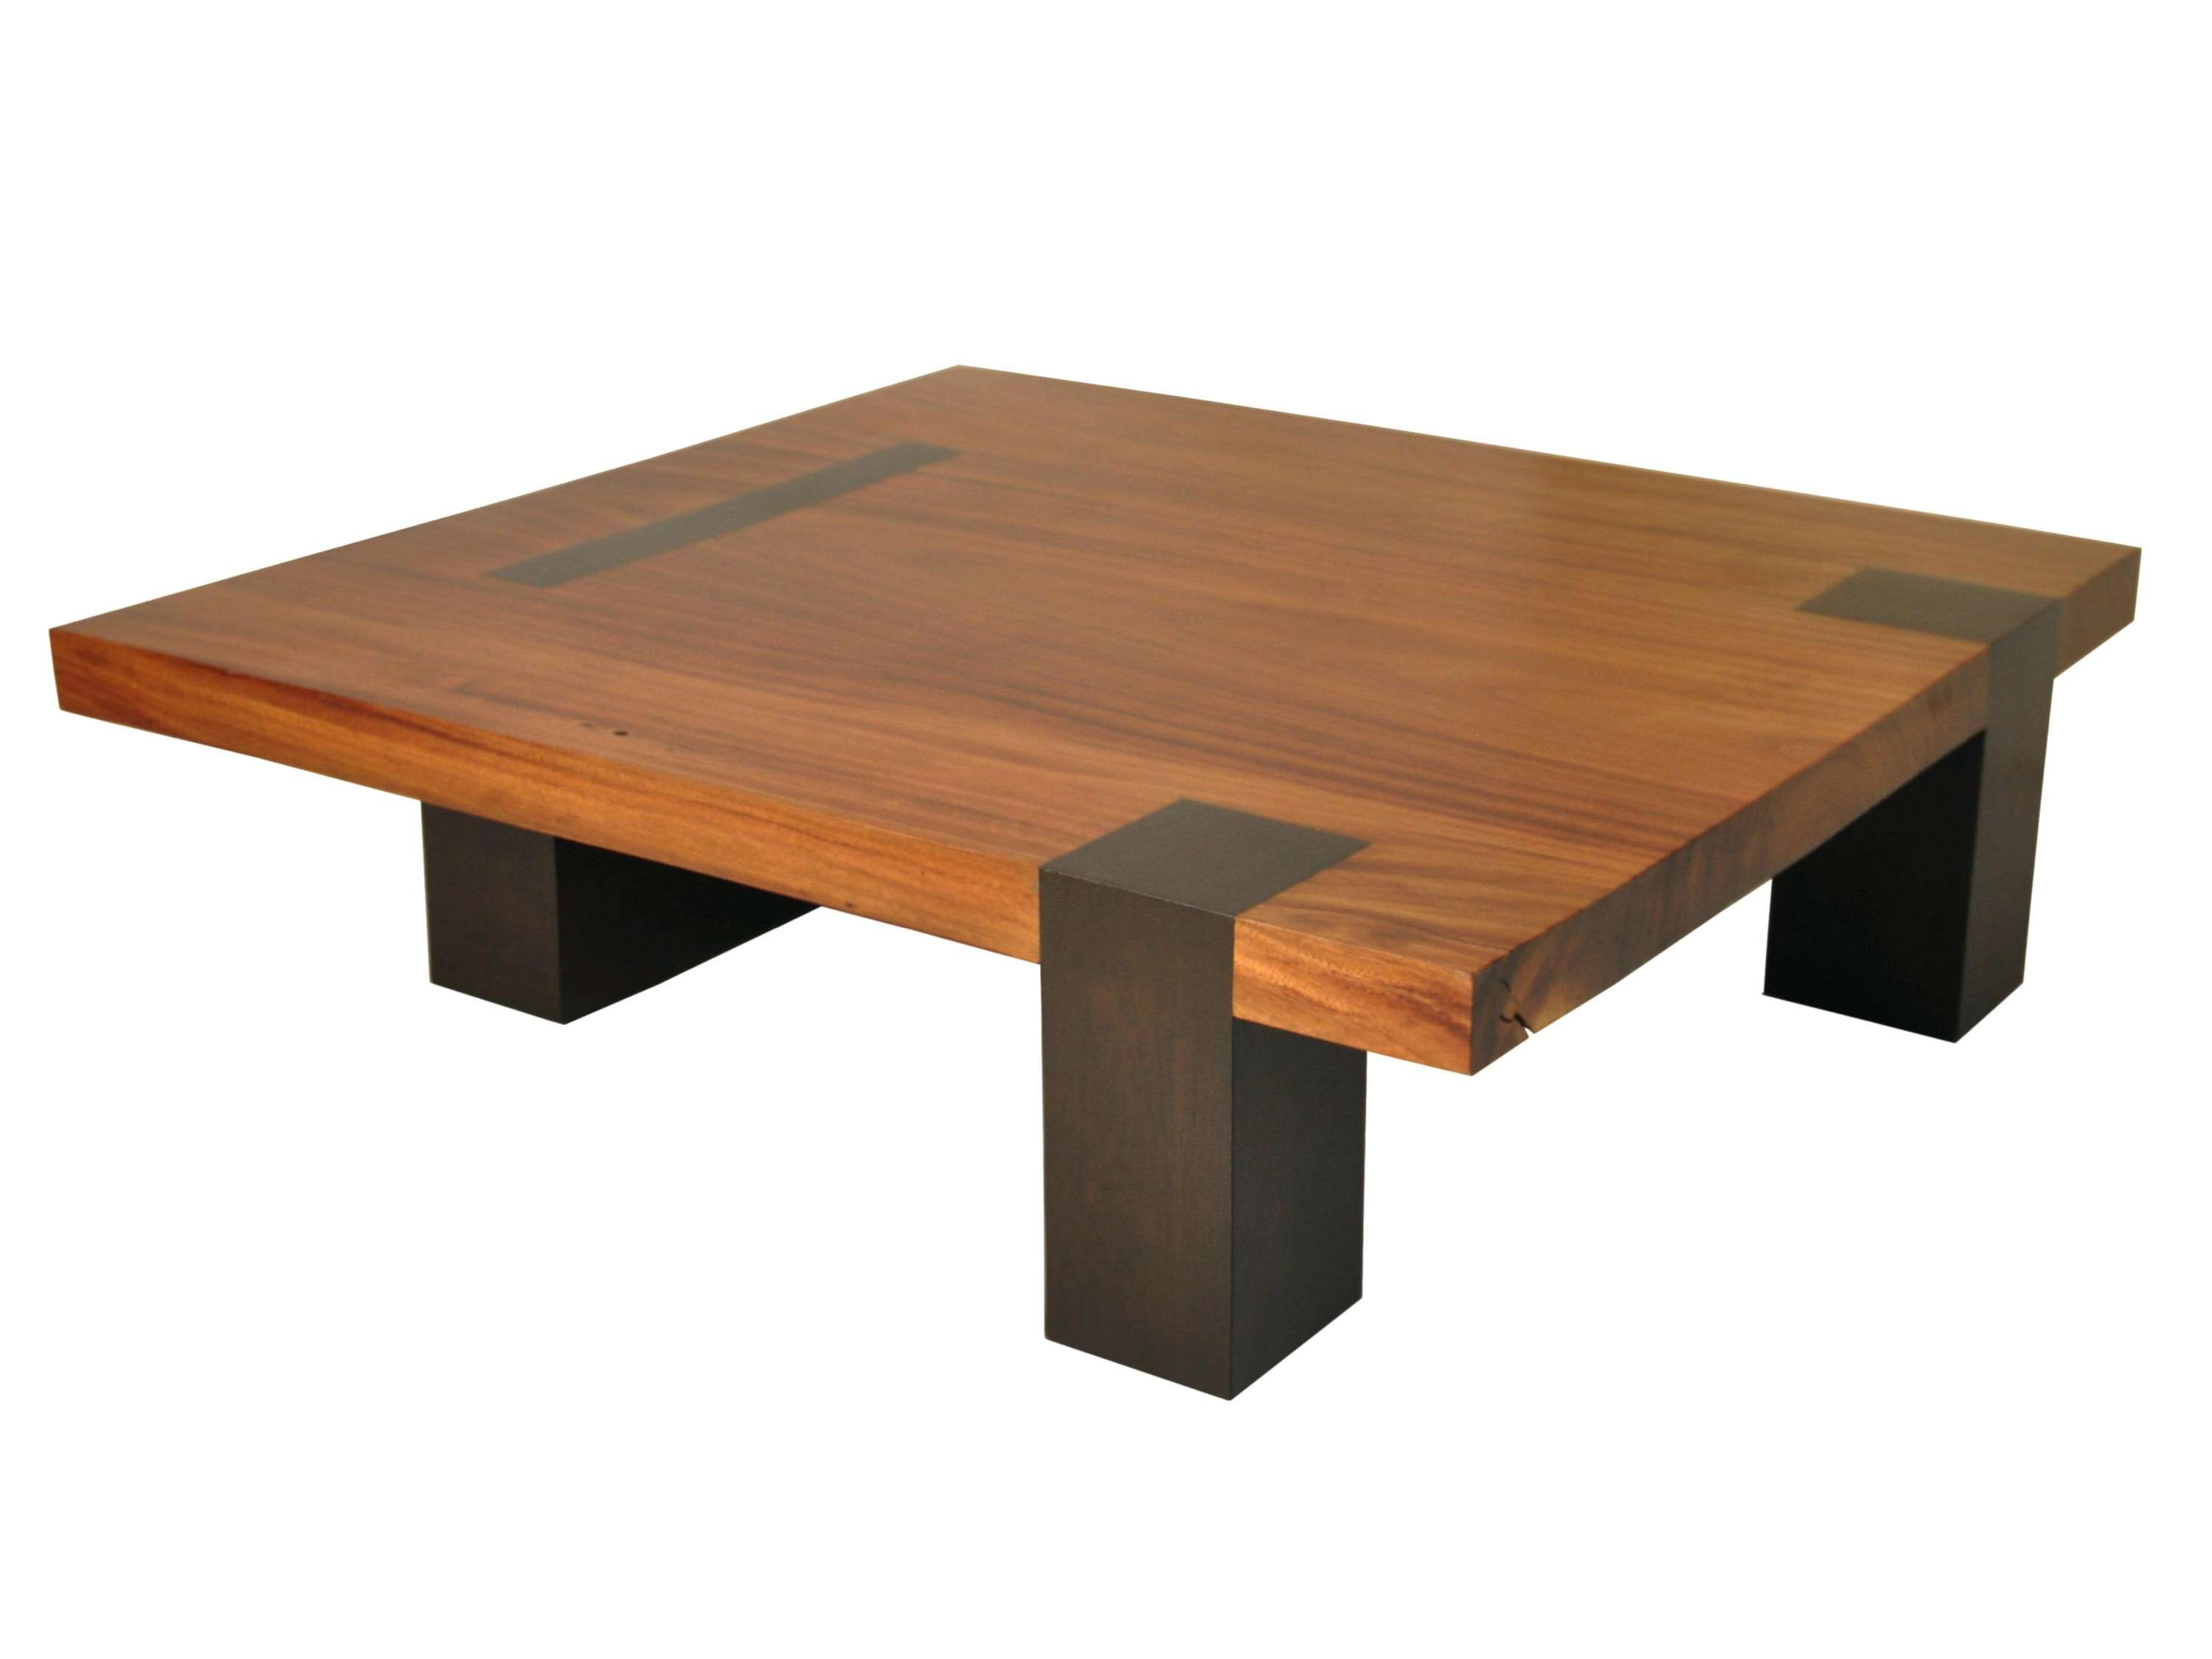 Most Popular Big Low Coffee Tables Regarding Coffee Table : Amazing Rustic Wood Coffee Table Big Coffee Tables (View 14 of 20)